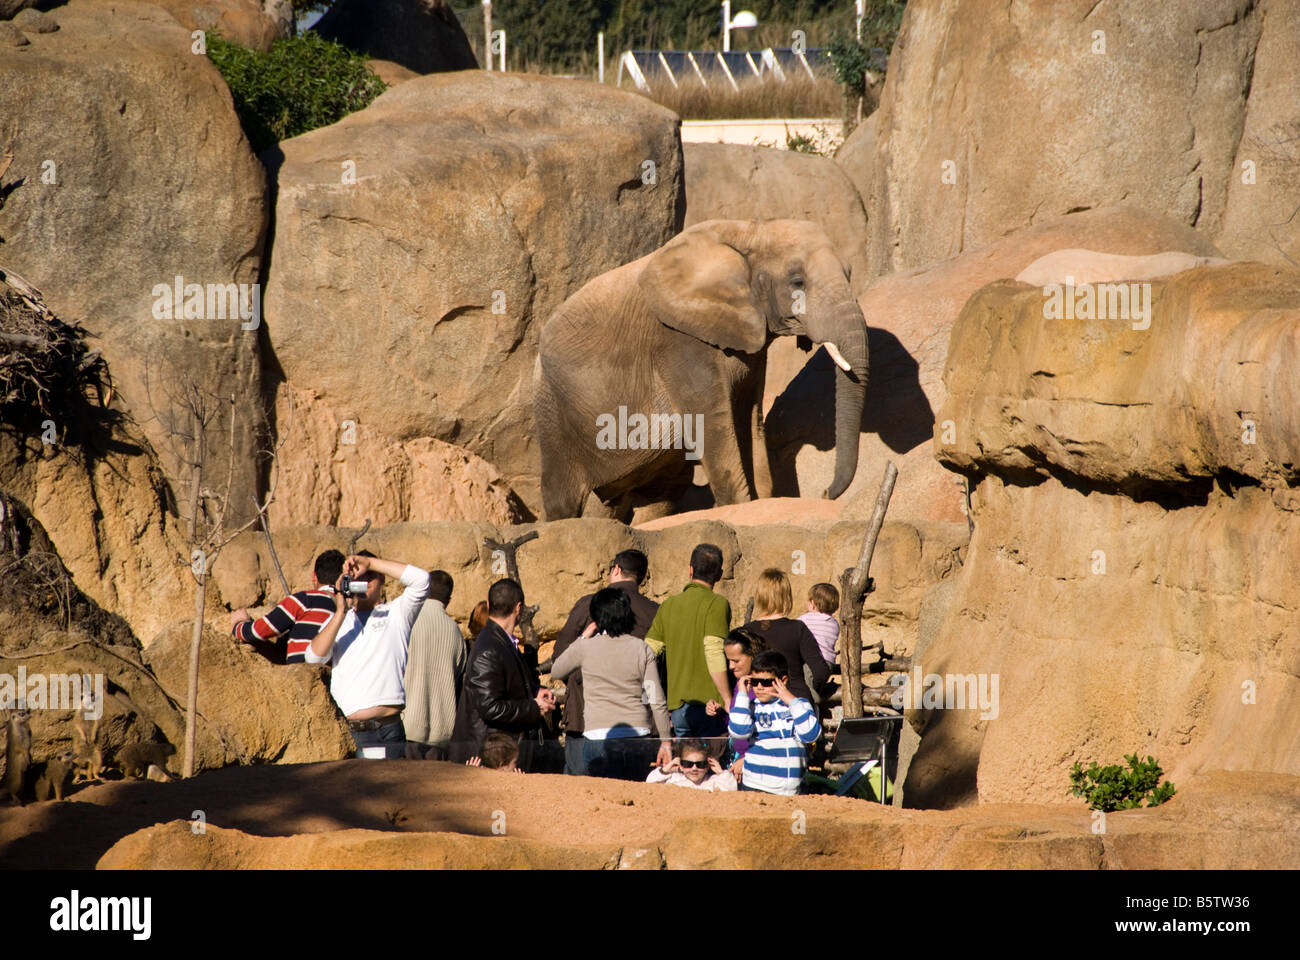 People looking at an elephant in enclosure inside the Biopark zoo which opened in the city of Valencia in 2008 - Stock Image